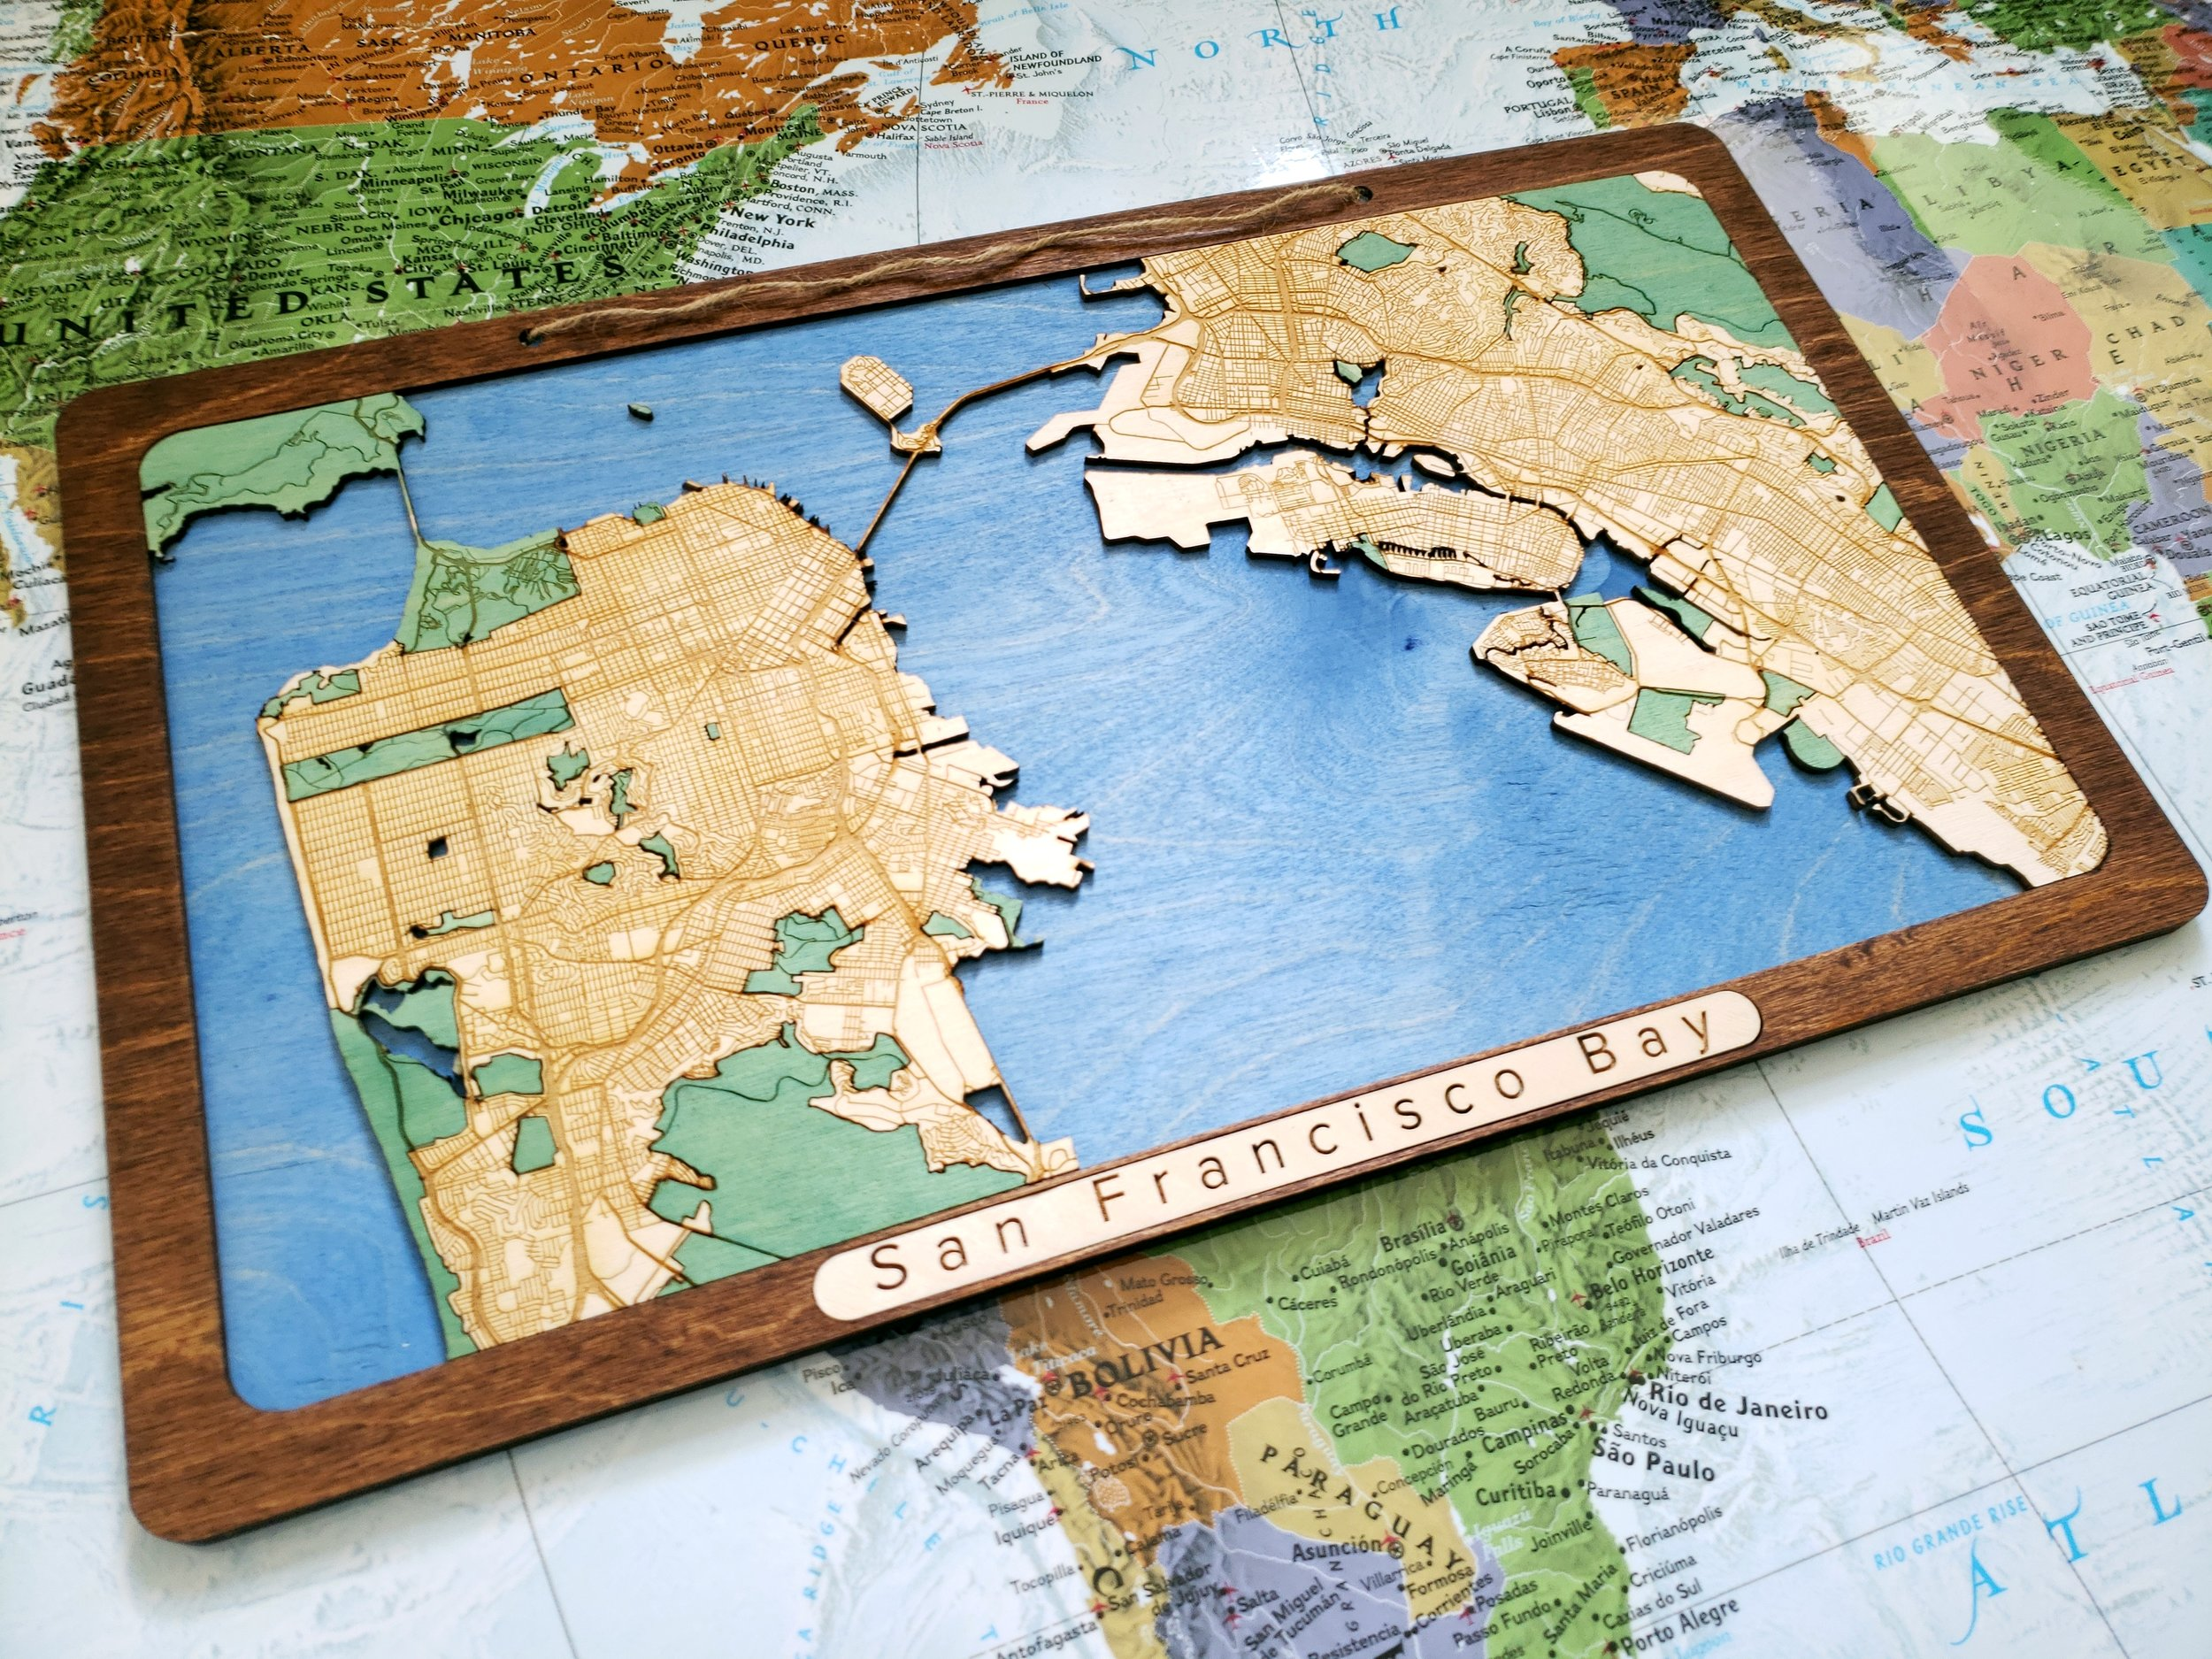 San Francisco Bay Area Wooden Map